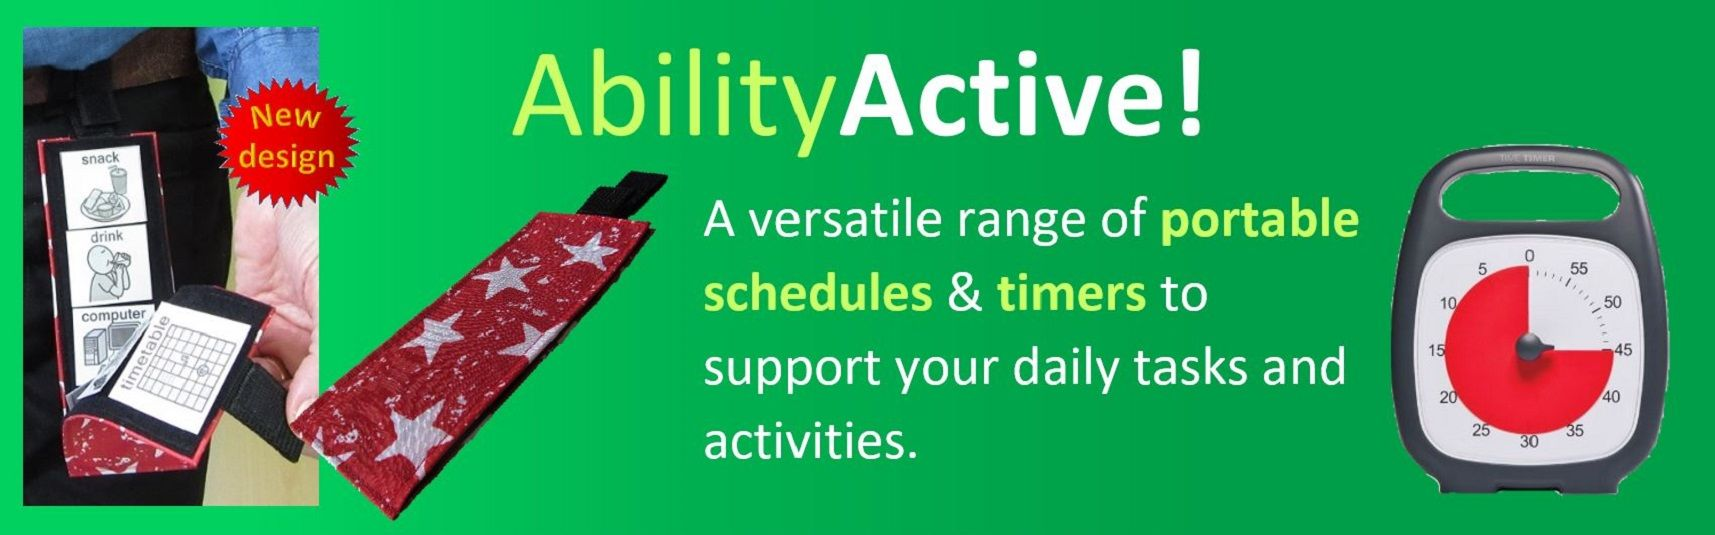 Ability World AbilityActive banner